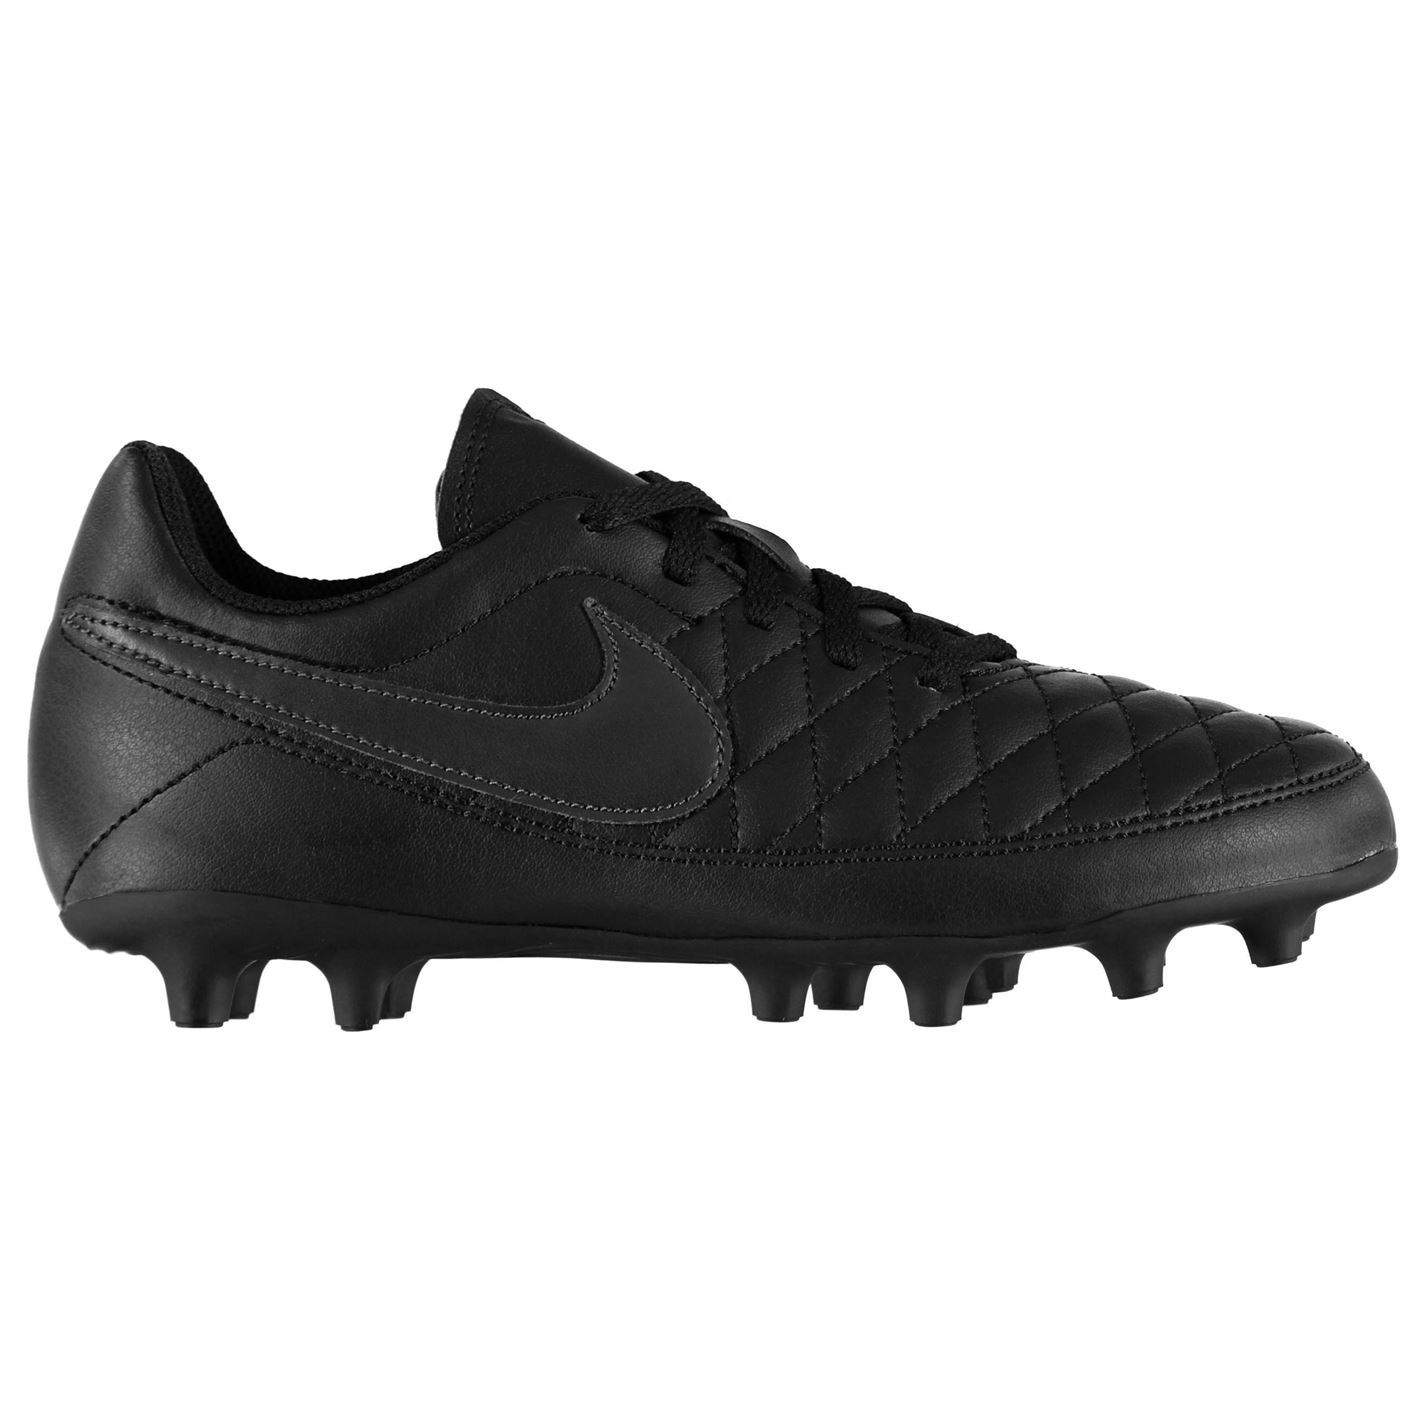 miniature 3 - Nike-majestry-FG-Firm-Ground-Chaussures-De-Football-Enfants-Football-Chaussures-Crampons